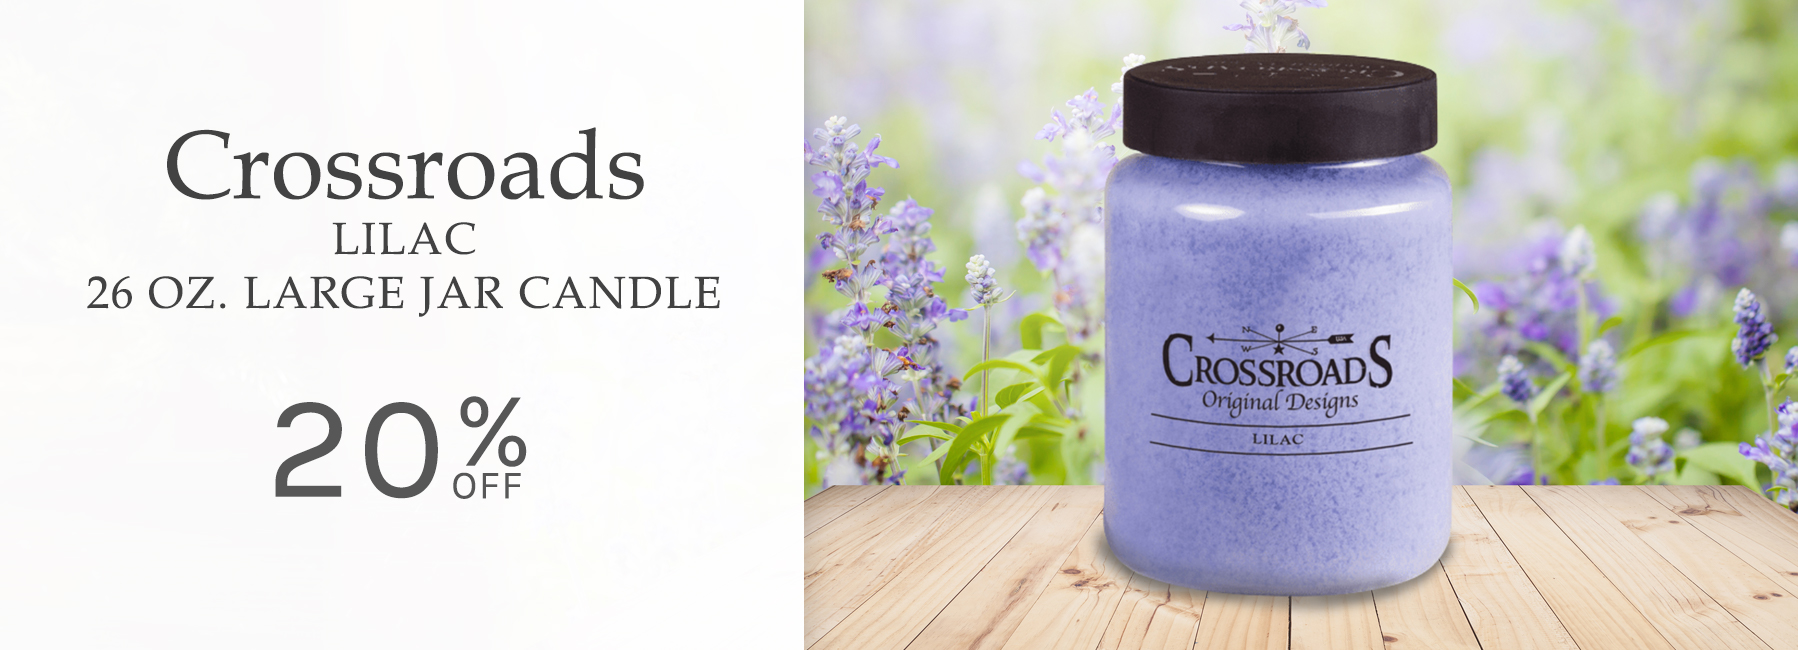 Crossroads - Lilac 26 Ounce Large Jar Candle - 20 Percent OFF